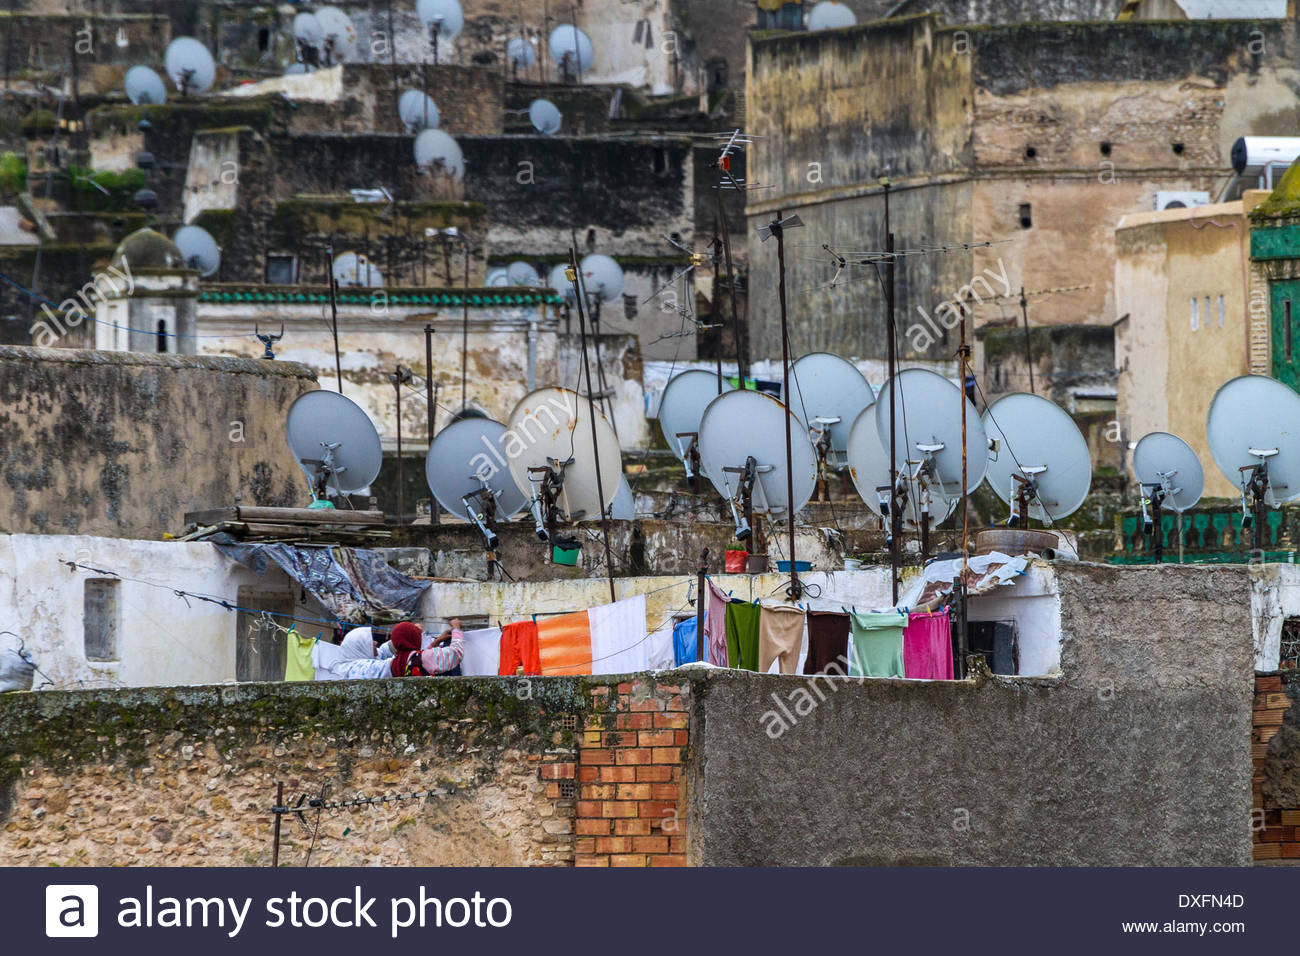 View of satellite dishes and television aerials on roof of houses - Morocco - Stock Image